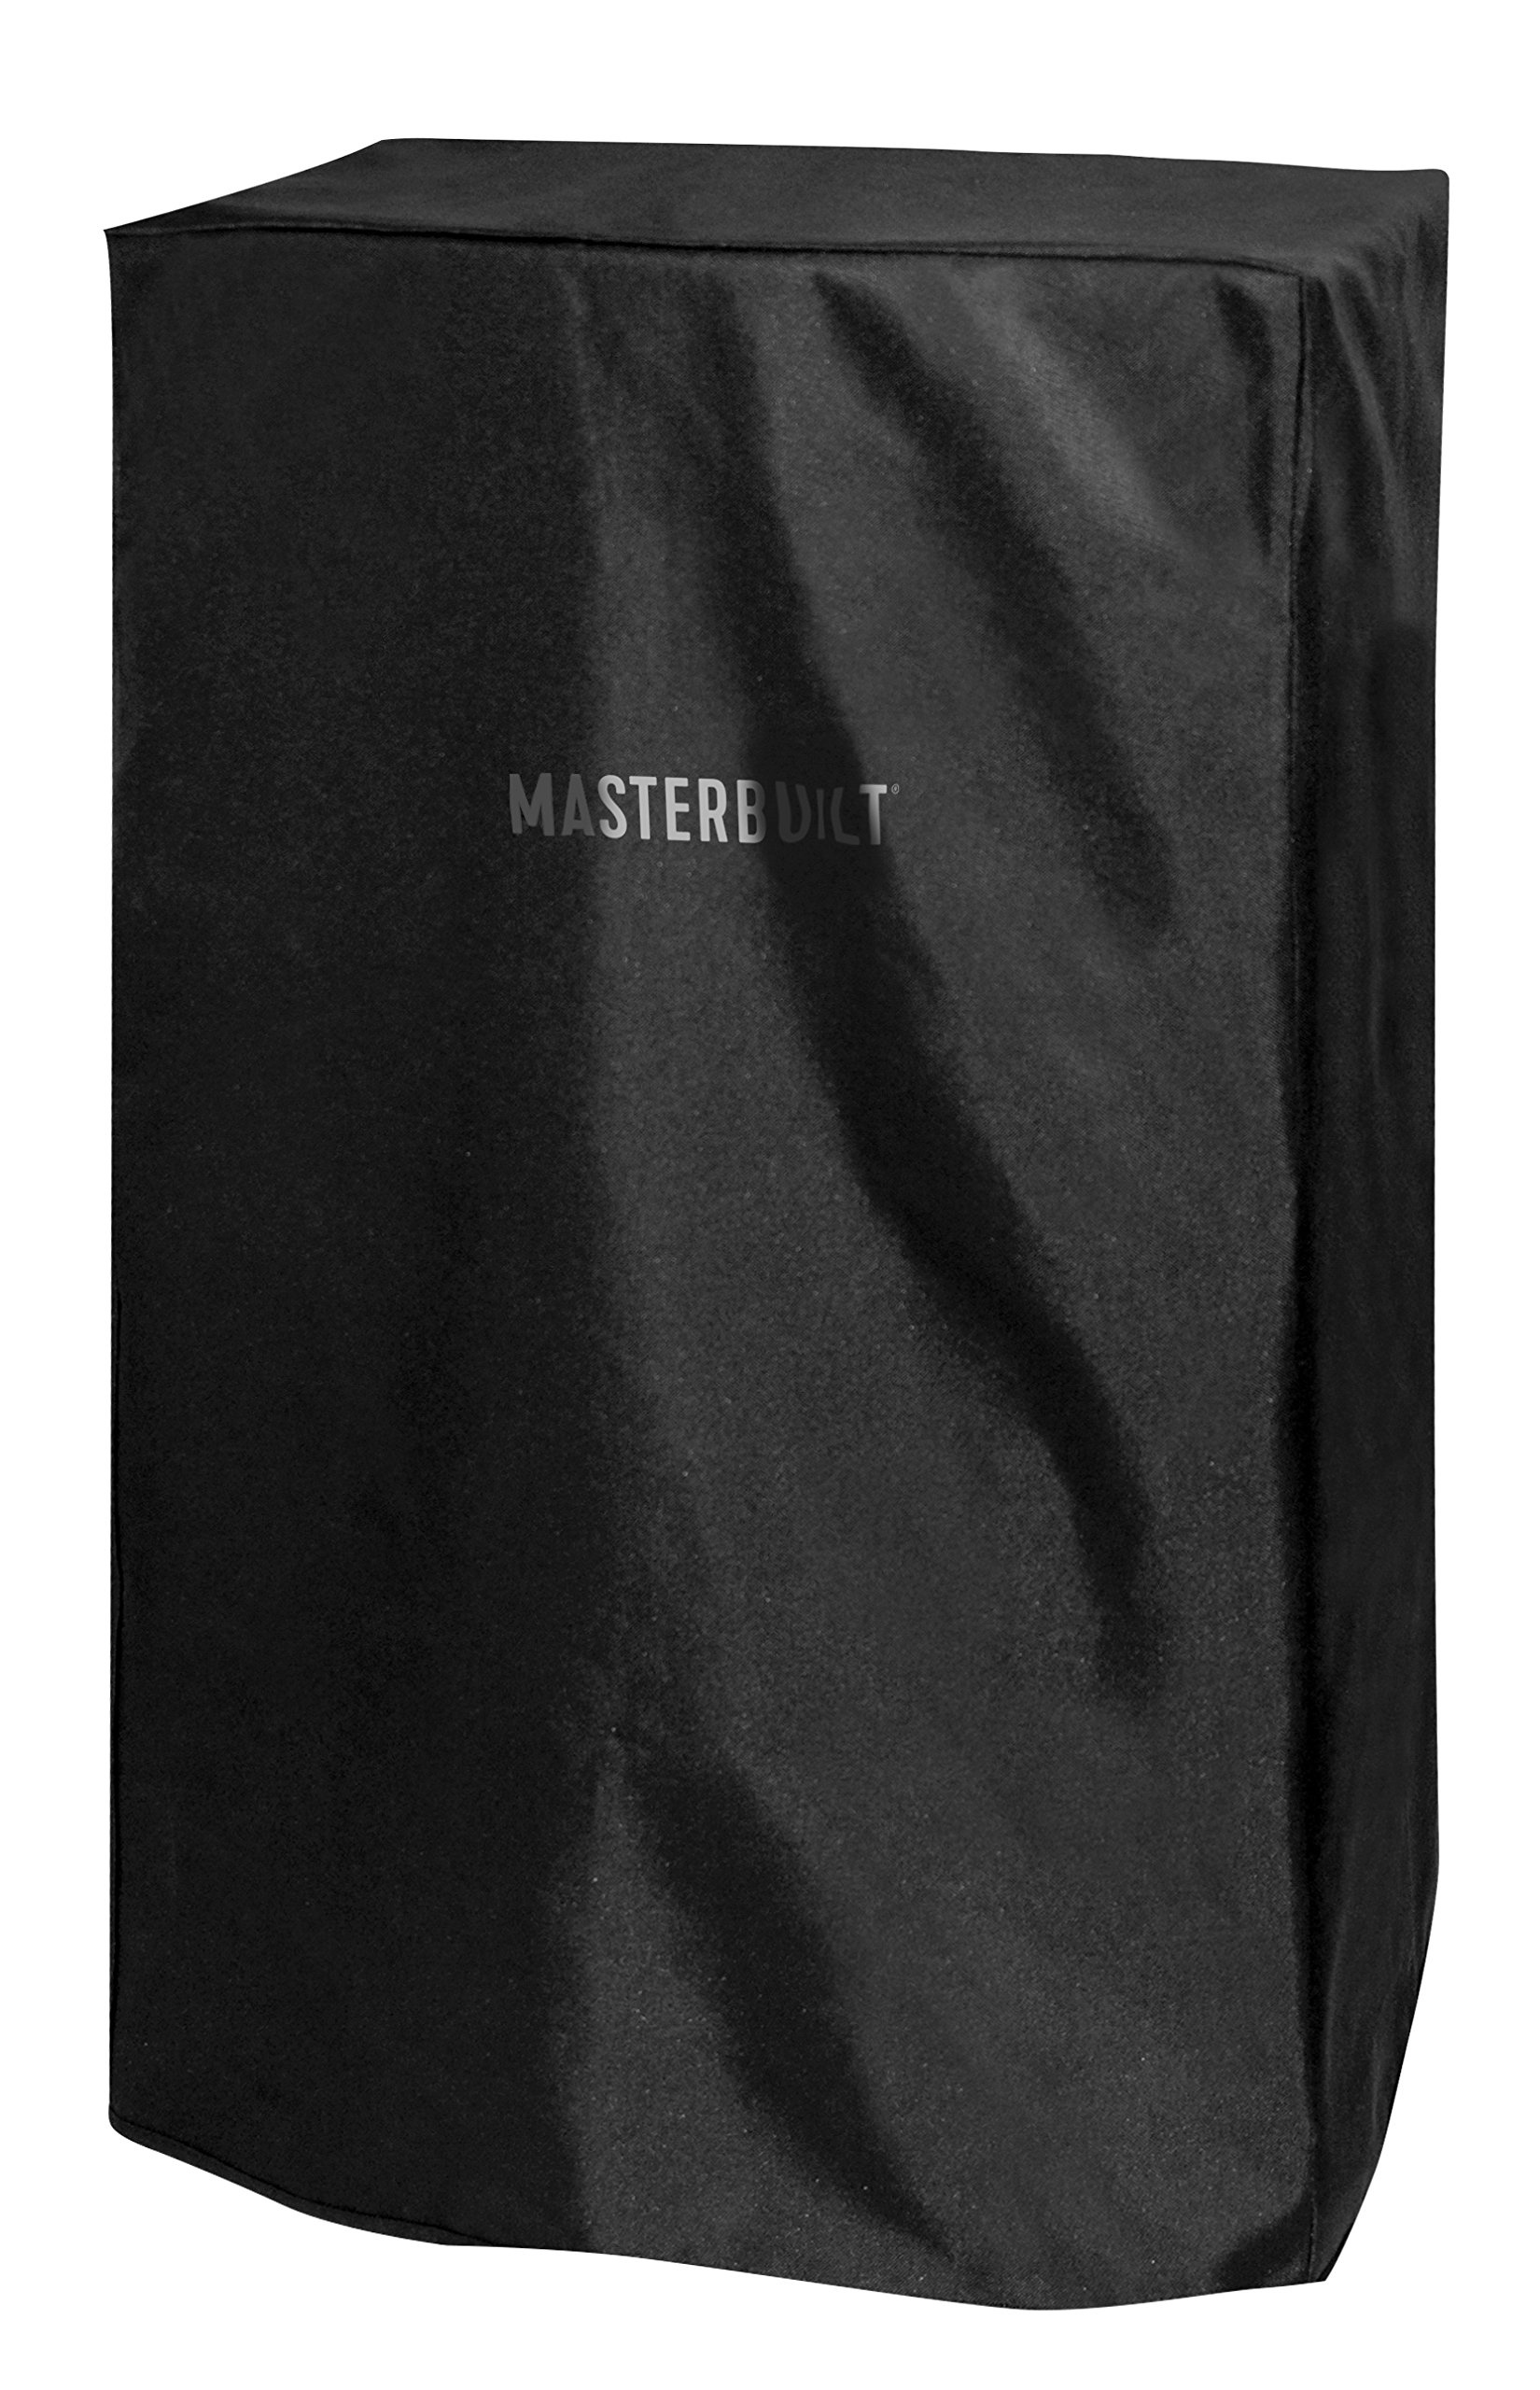 Masterbuilt MB20080110 Electric Smoker Cover, 11.80in. x 11.60in. x 1.20in, fits 30'' (Newer Version)